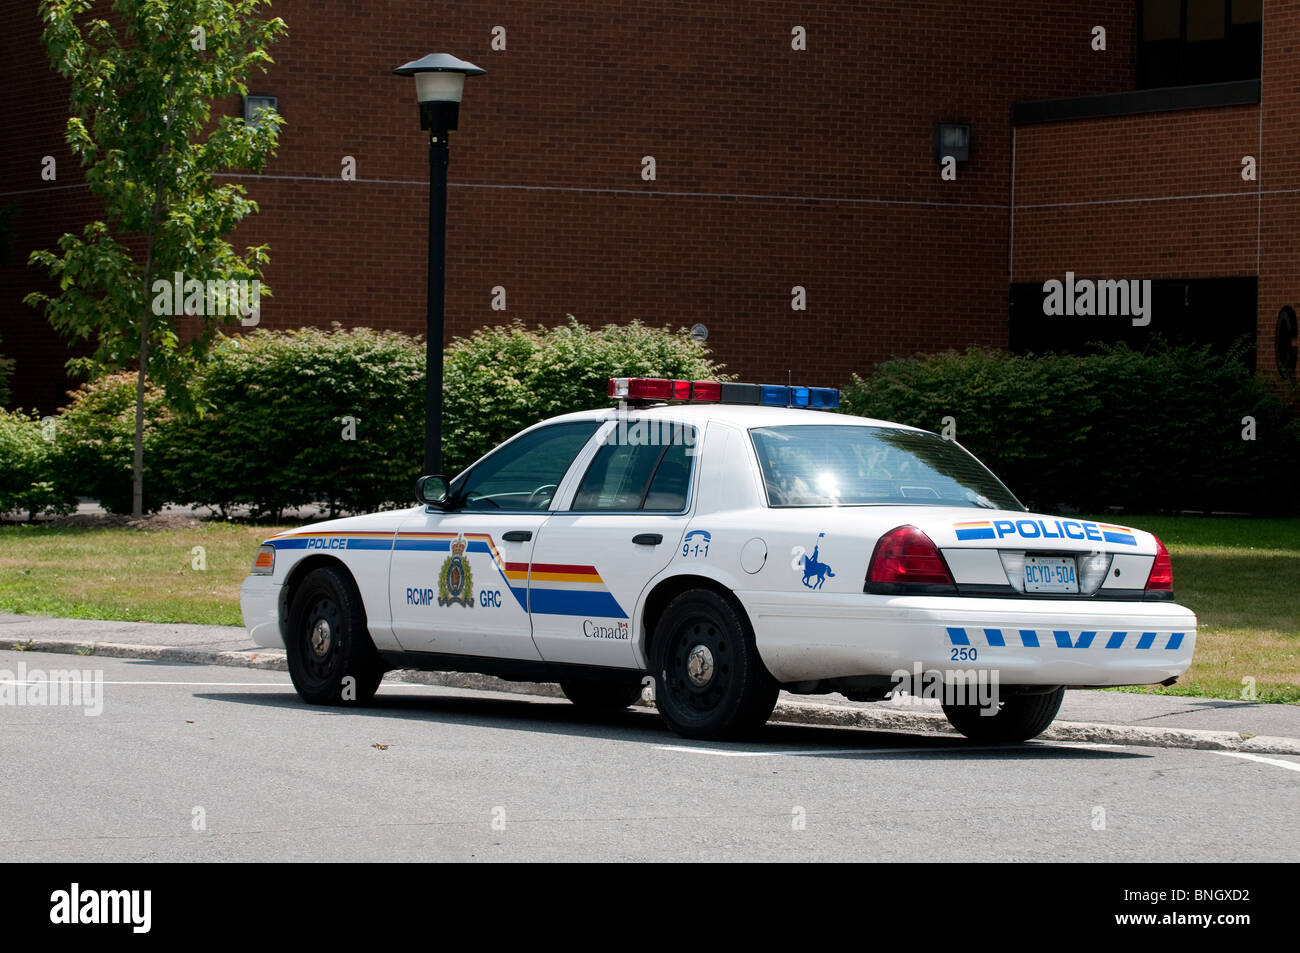 Rcmp royal canadian mounted police patrol car stock image